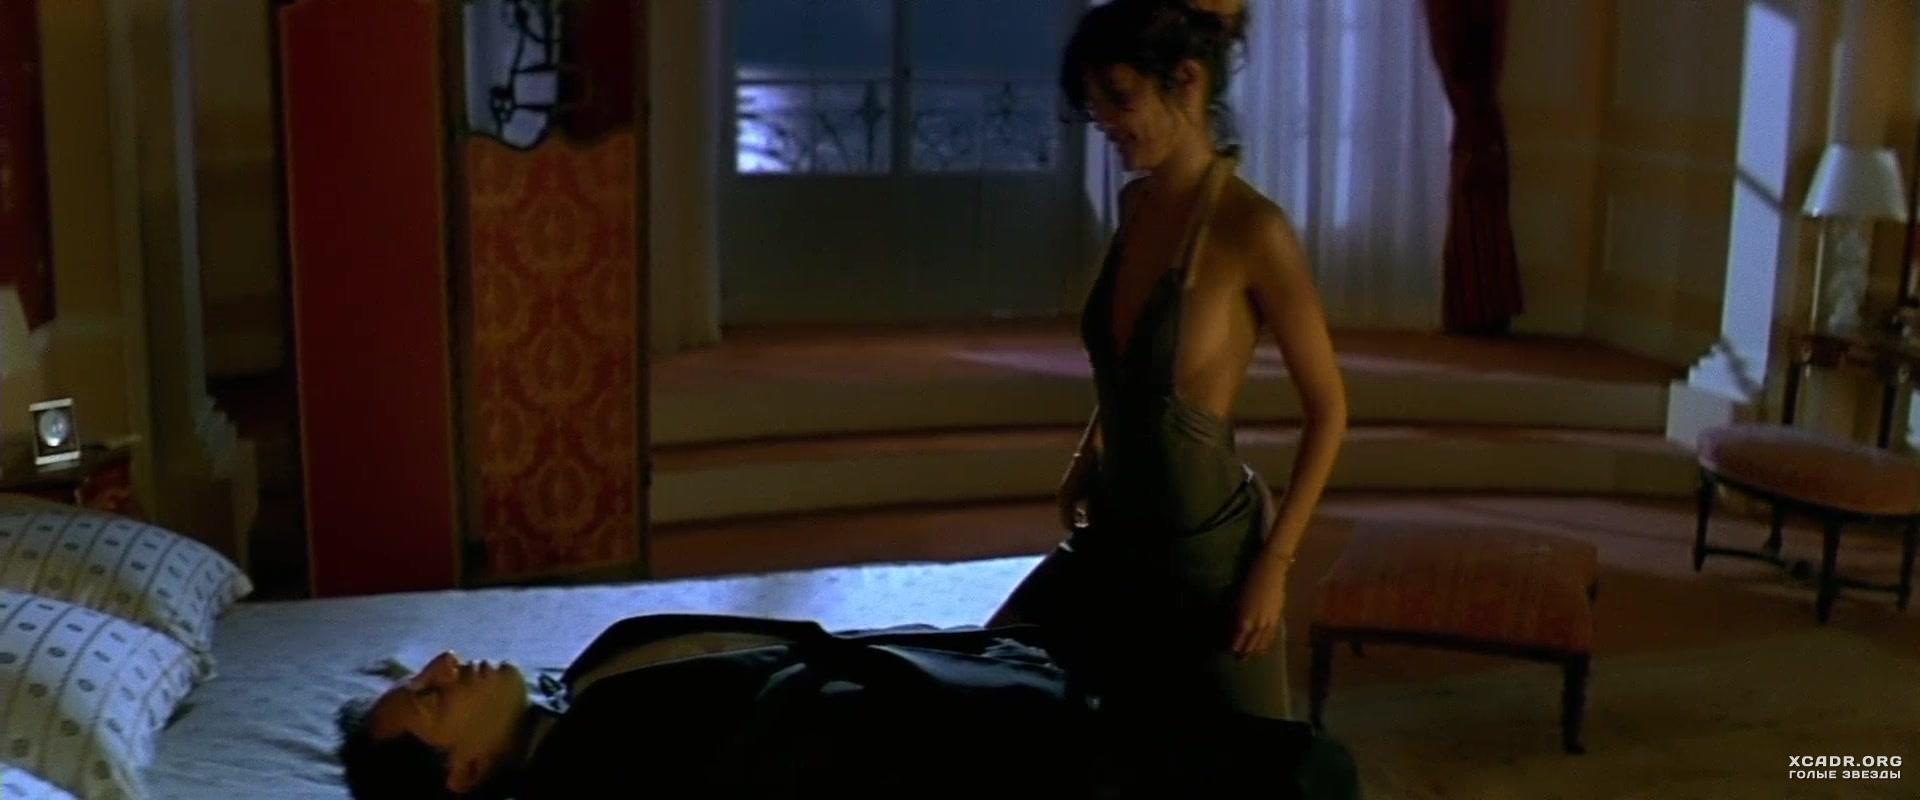 orgasming-audrey-tautou-priceless-nude-amateur-pussy-free